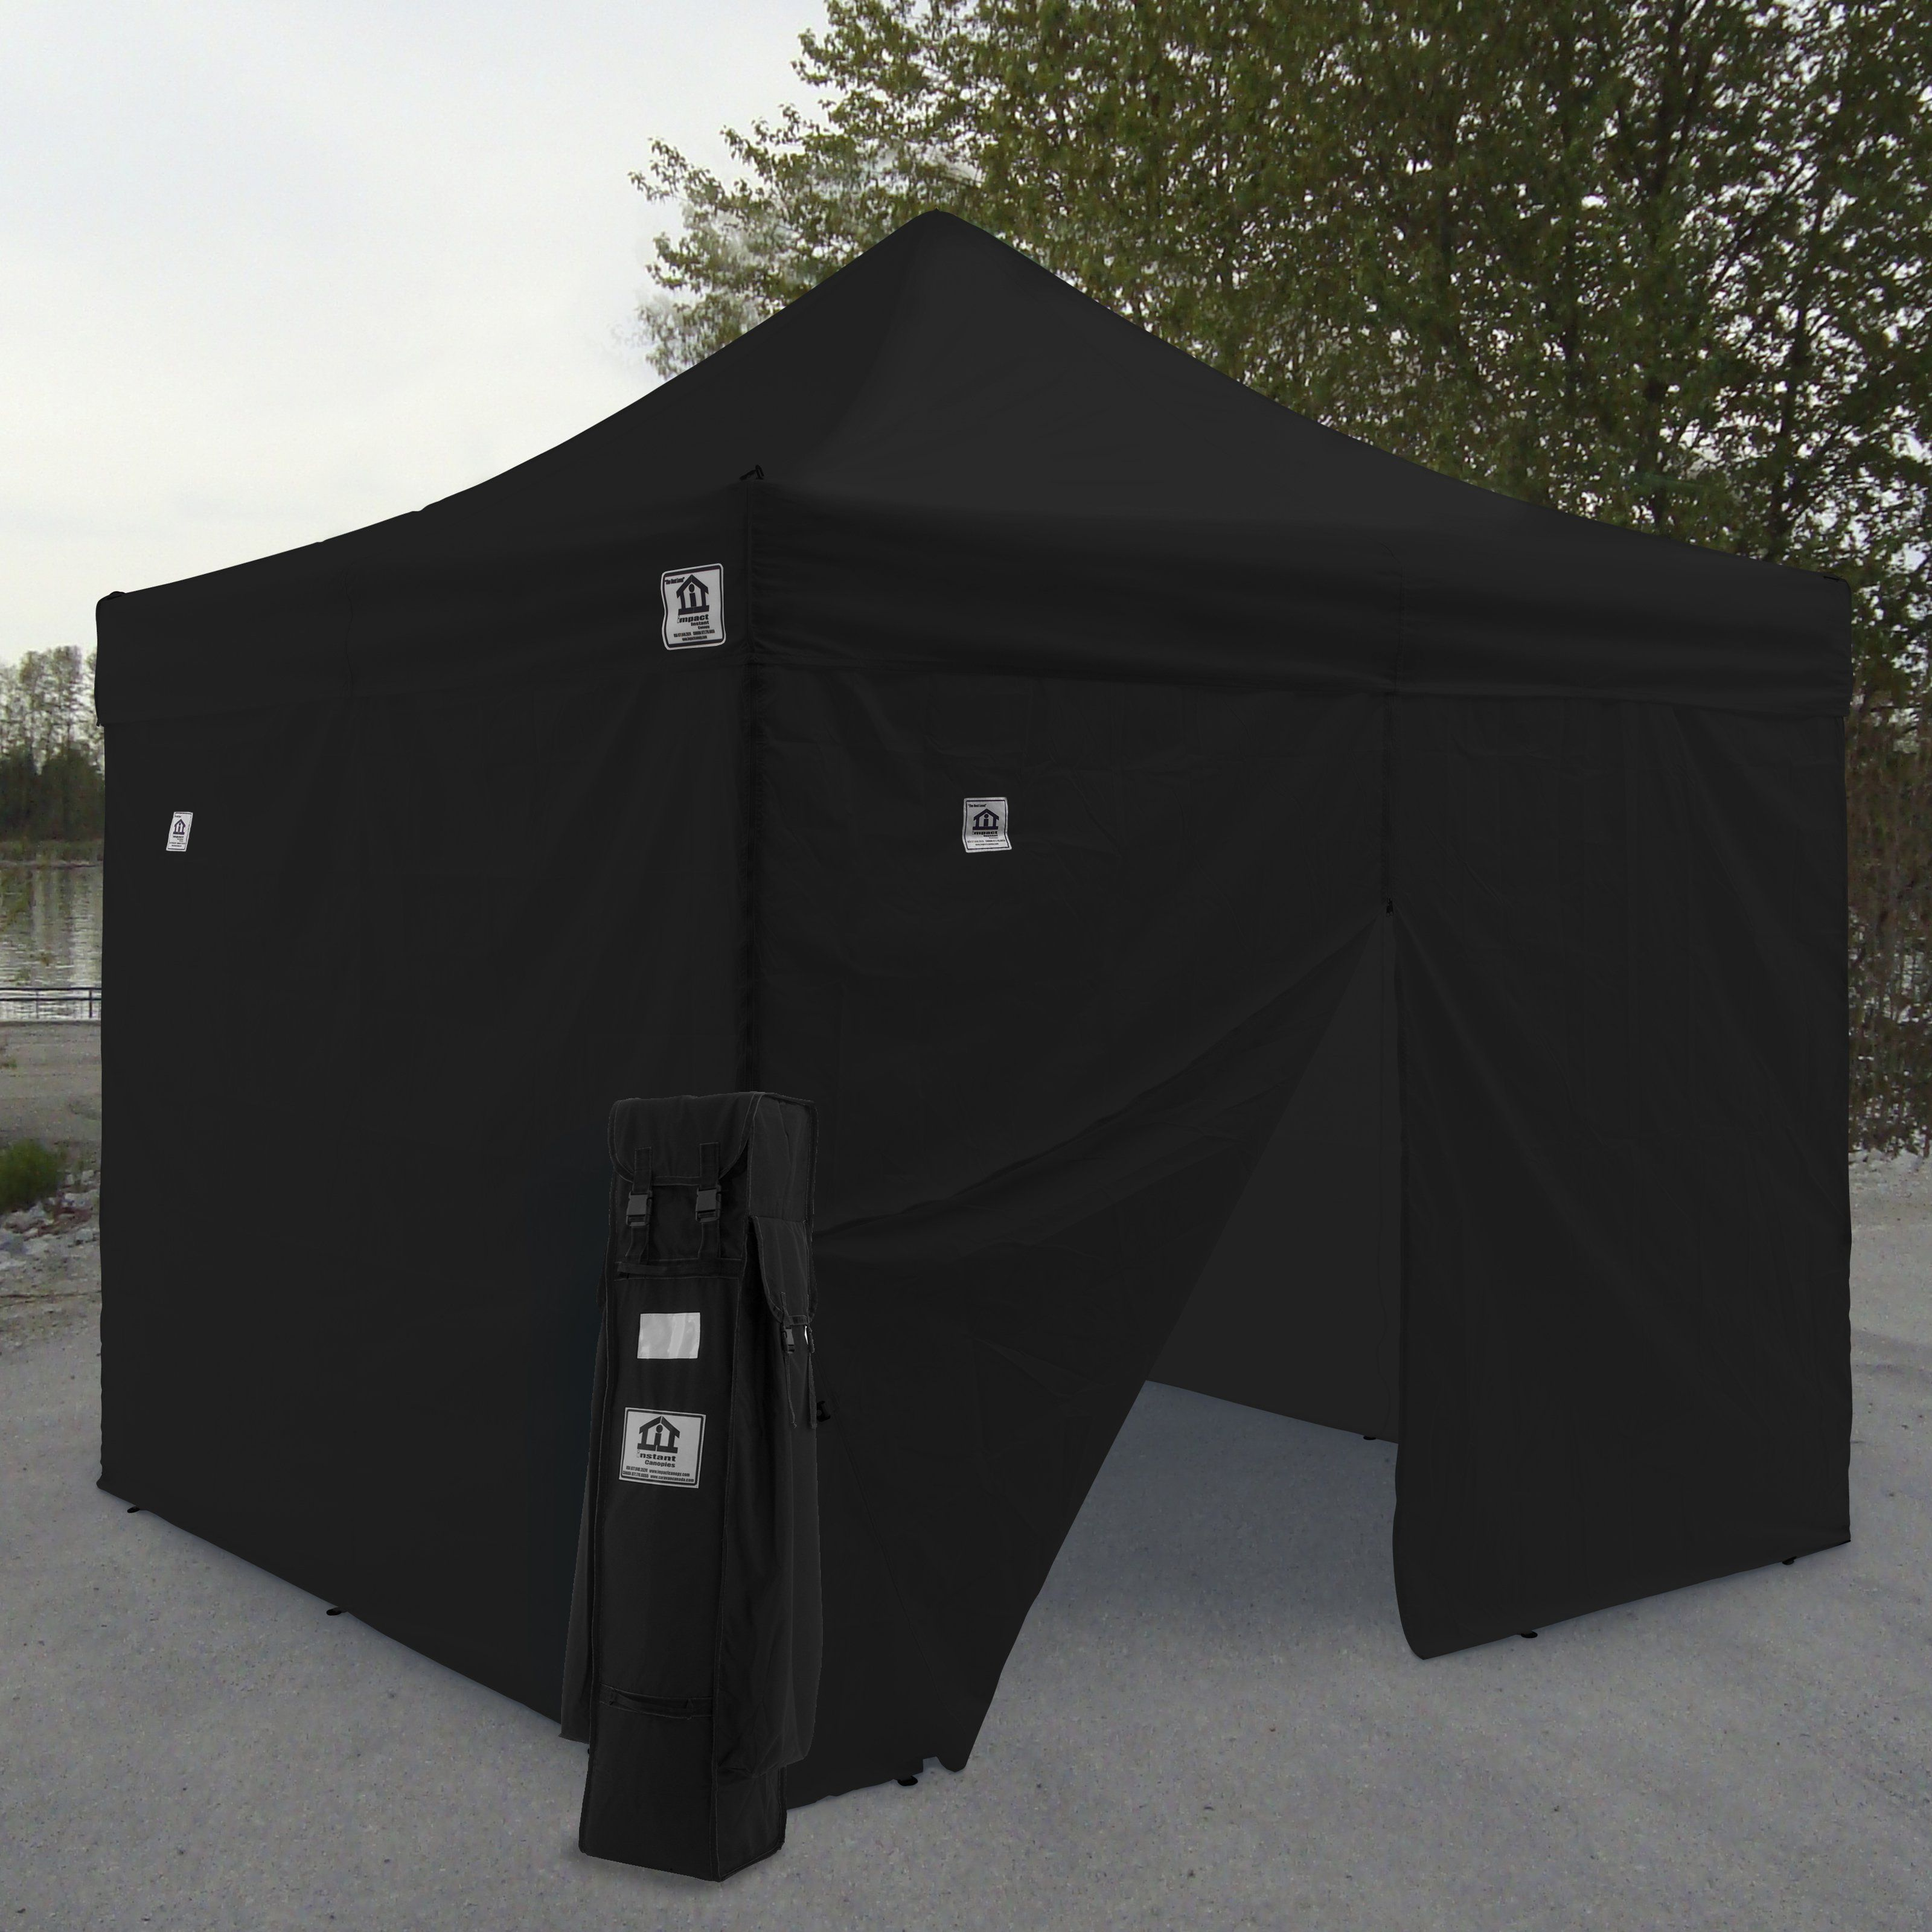 Impact Canopy AOL 10x10 ft. Ez Pop Up Canopy Tent Instant Canopy Aluminum with Wheeled & Impact Canopy AOL 10x10 ft. Ez Pop Up Canopy Tent Instant Canopy ...